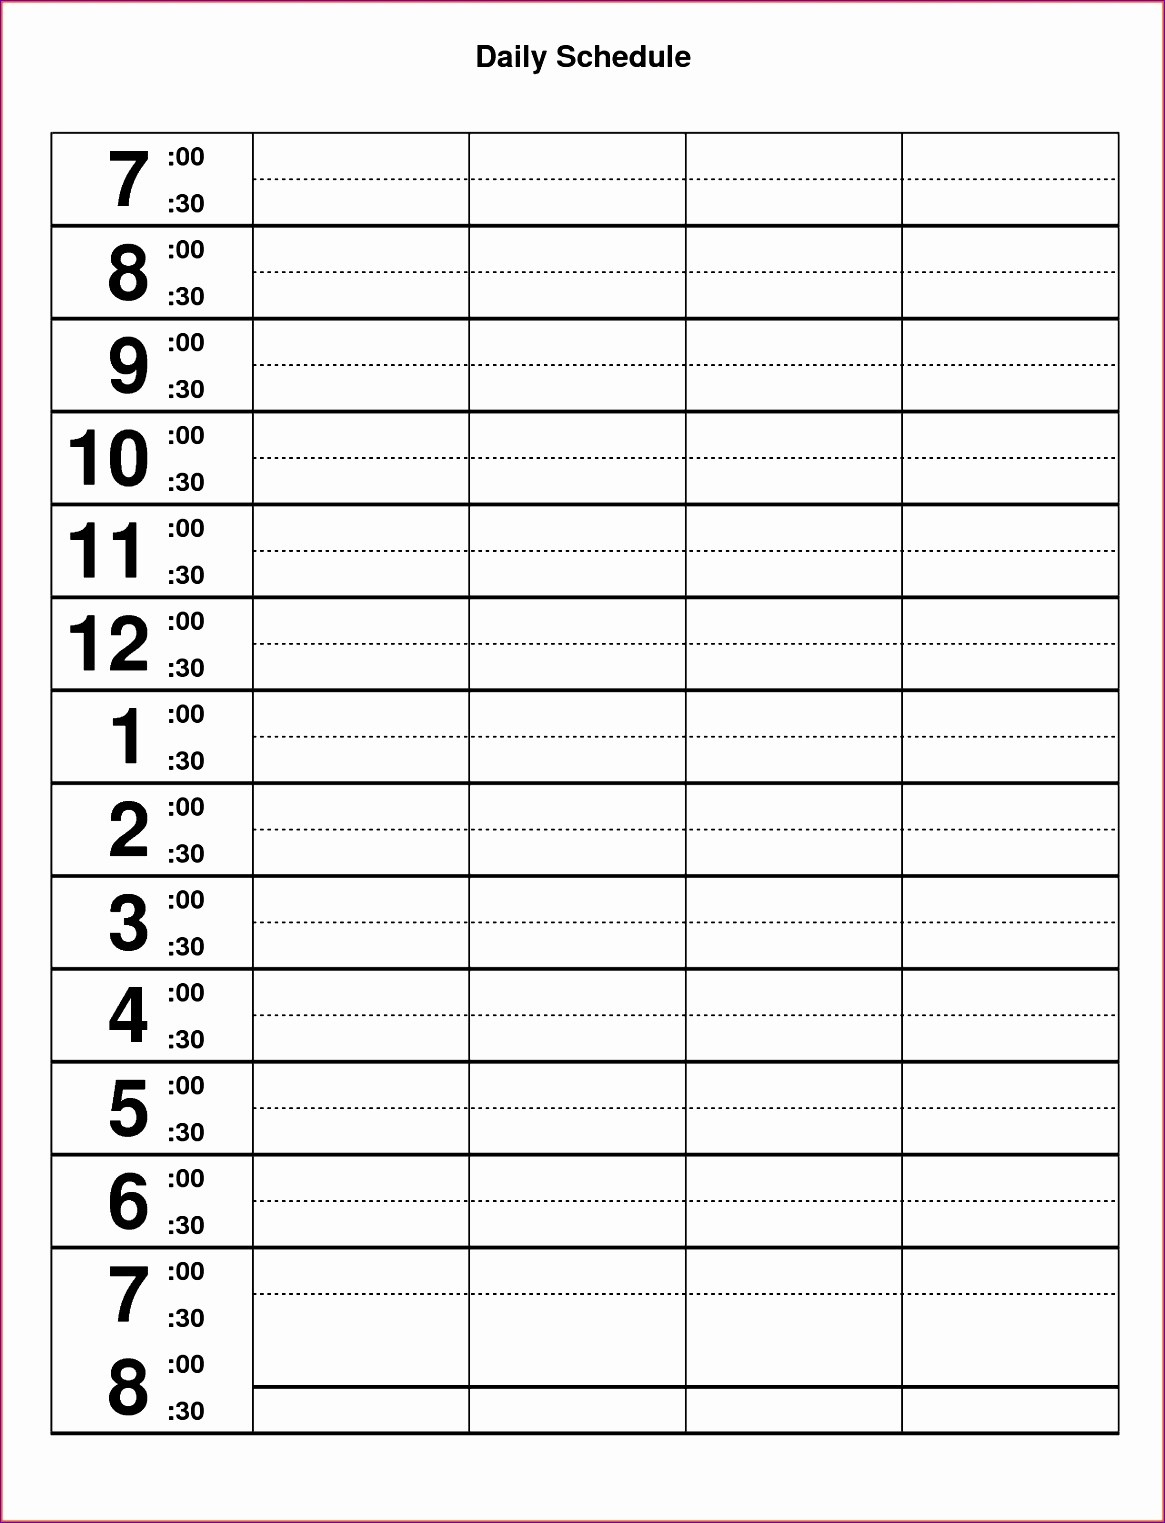 Daily Hourly Planner Template Excel Best Of 10 Excel Hourly Schedule Template Exceltemplates